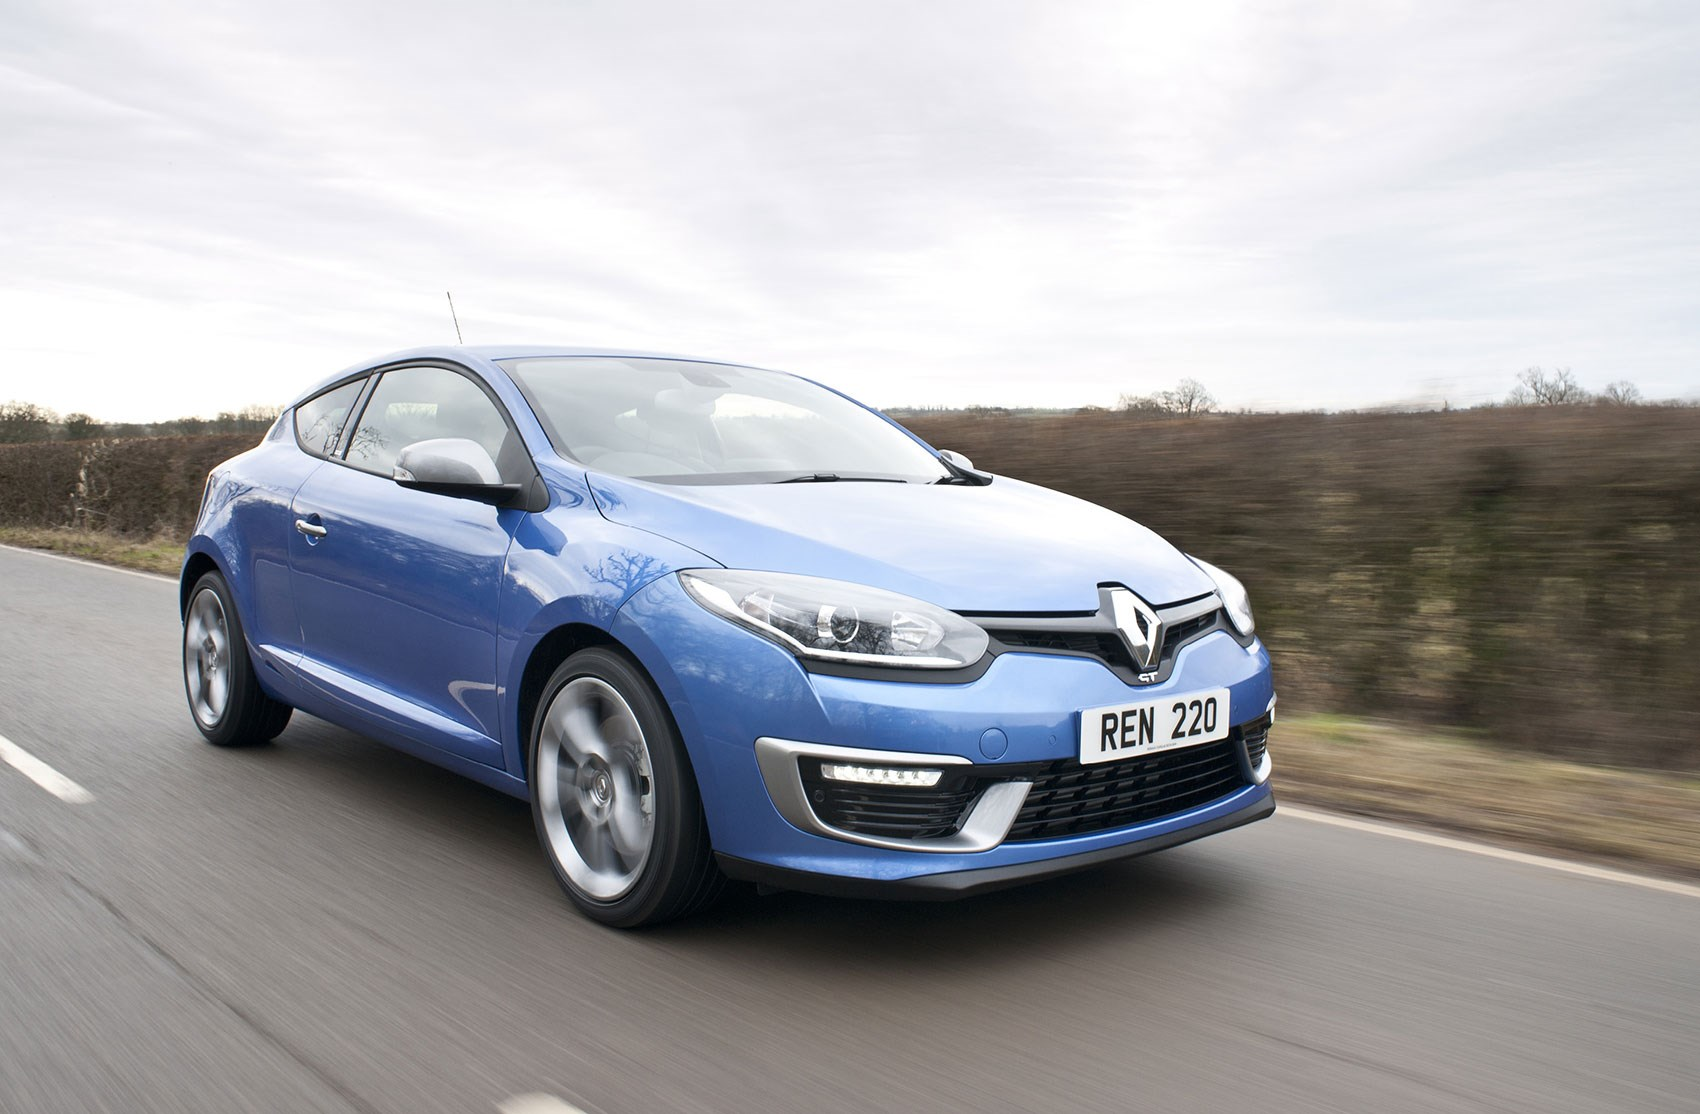 Bmw Of Murray >> Renault Megane Renaultsport GT 220 Coupe (2015) review | CAR Magazine